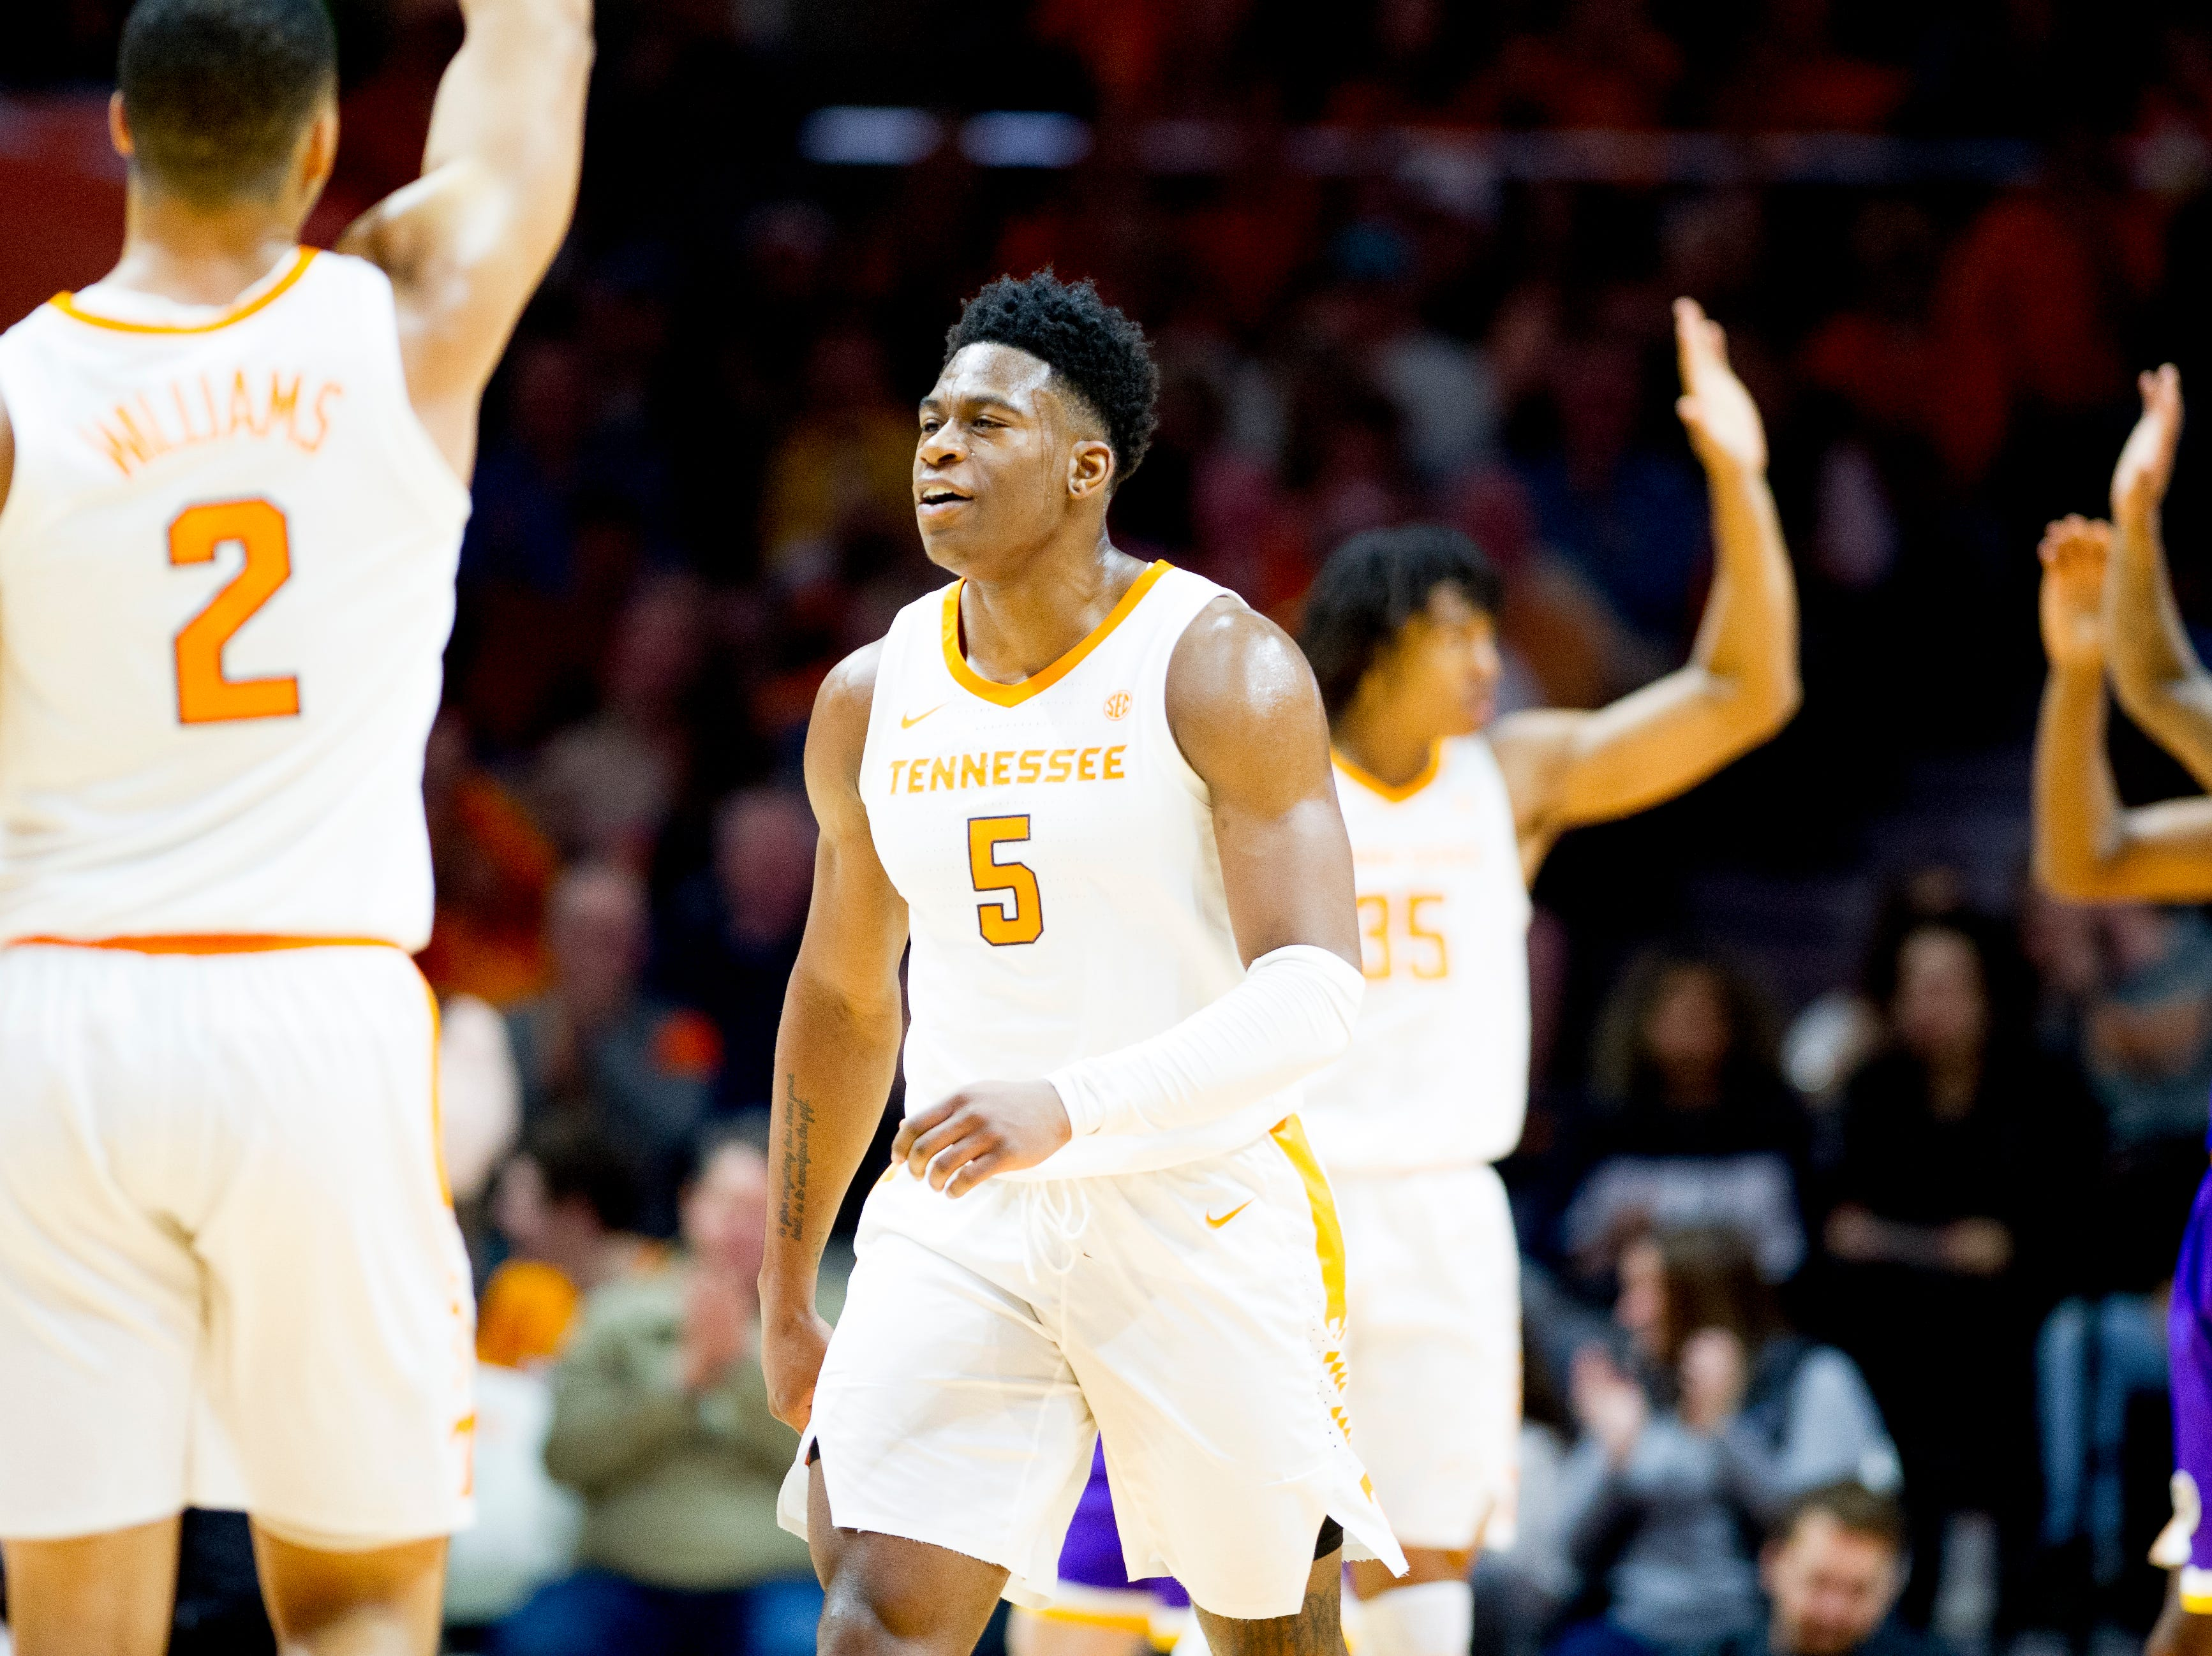 Tennessee guard Admiral Schofield (5) celebrates a point during a game between Tennessee and Tennessee Tech at Thompson-Boling Arena in Knoxville, Tennessee on Saturday, December 29, 2018.